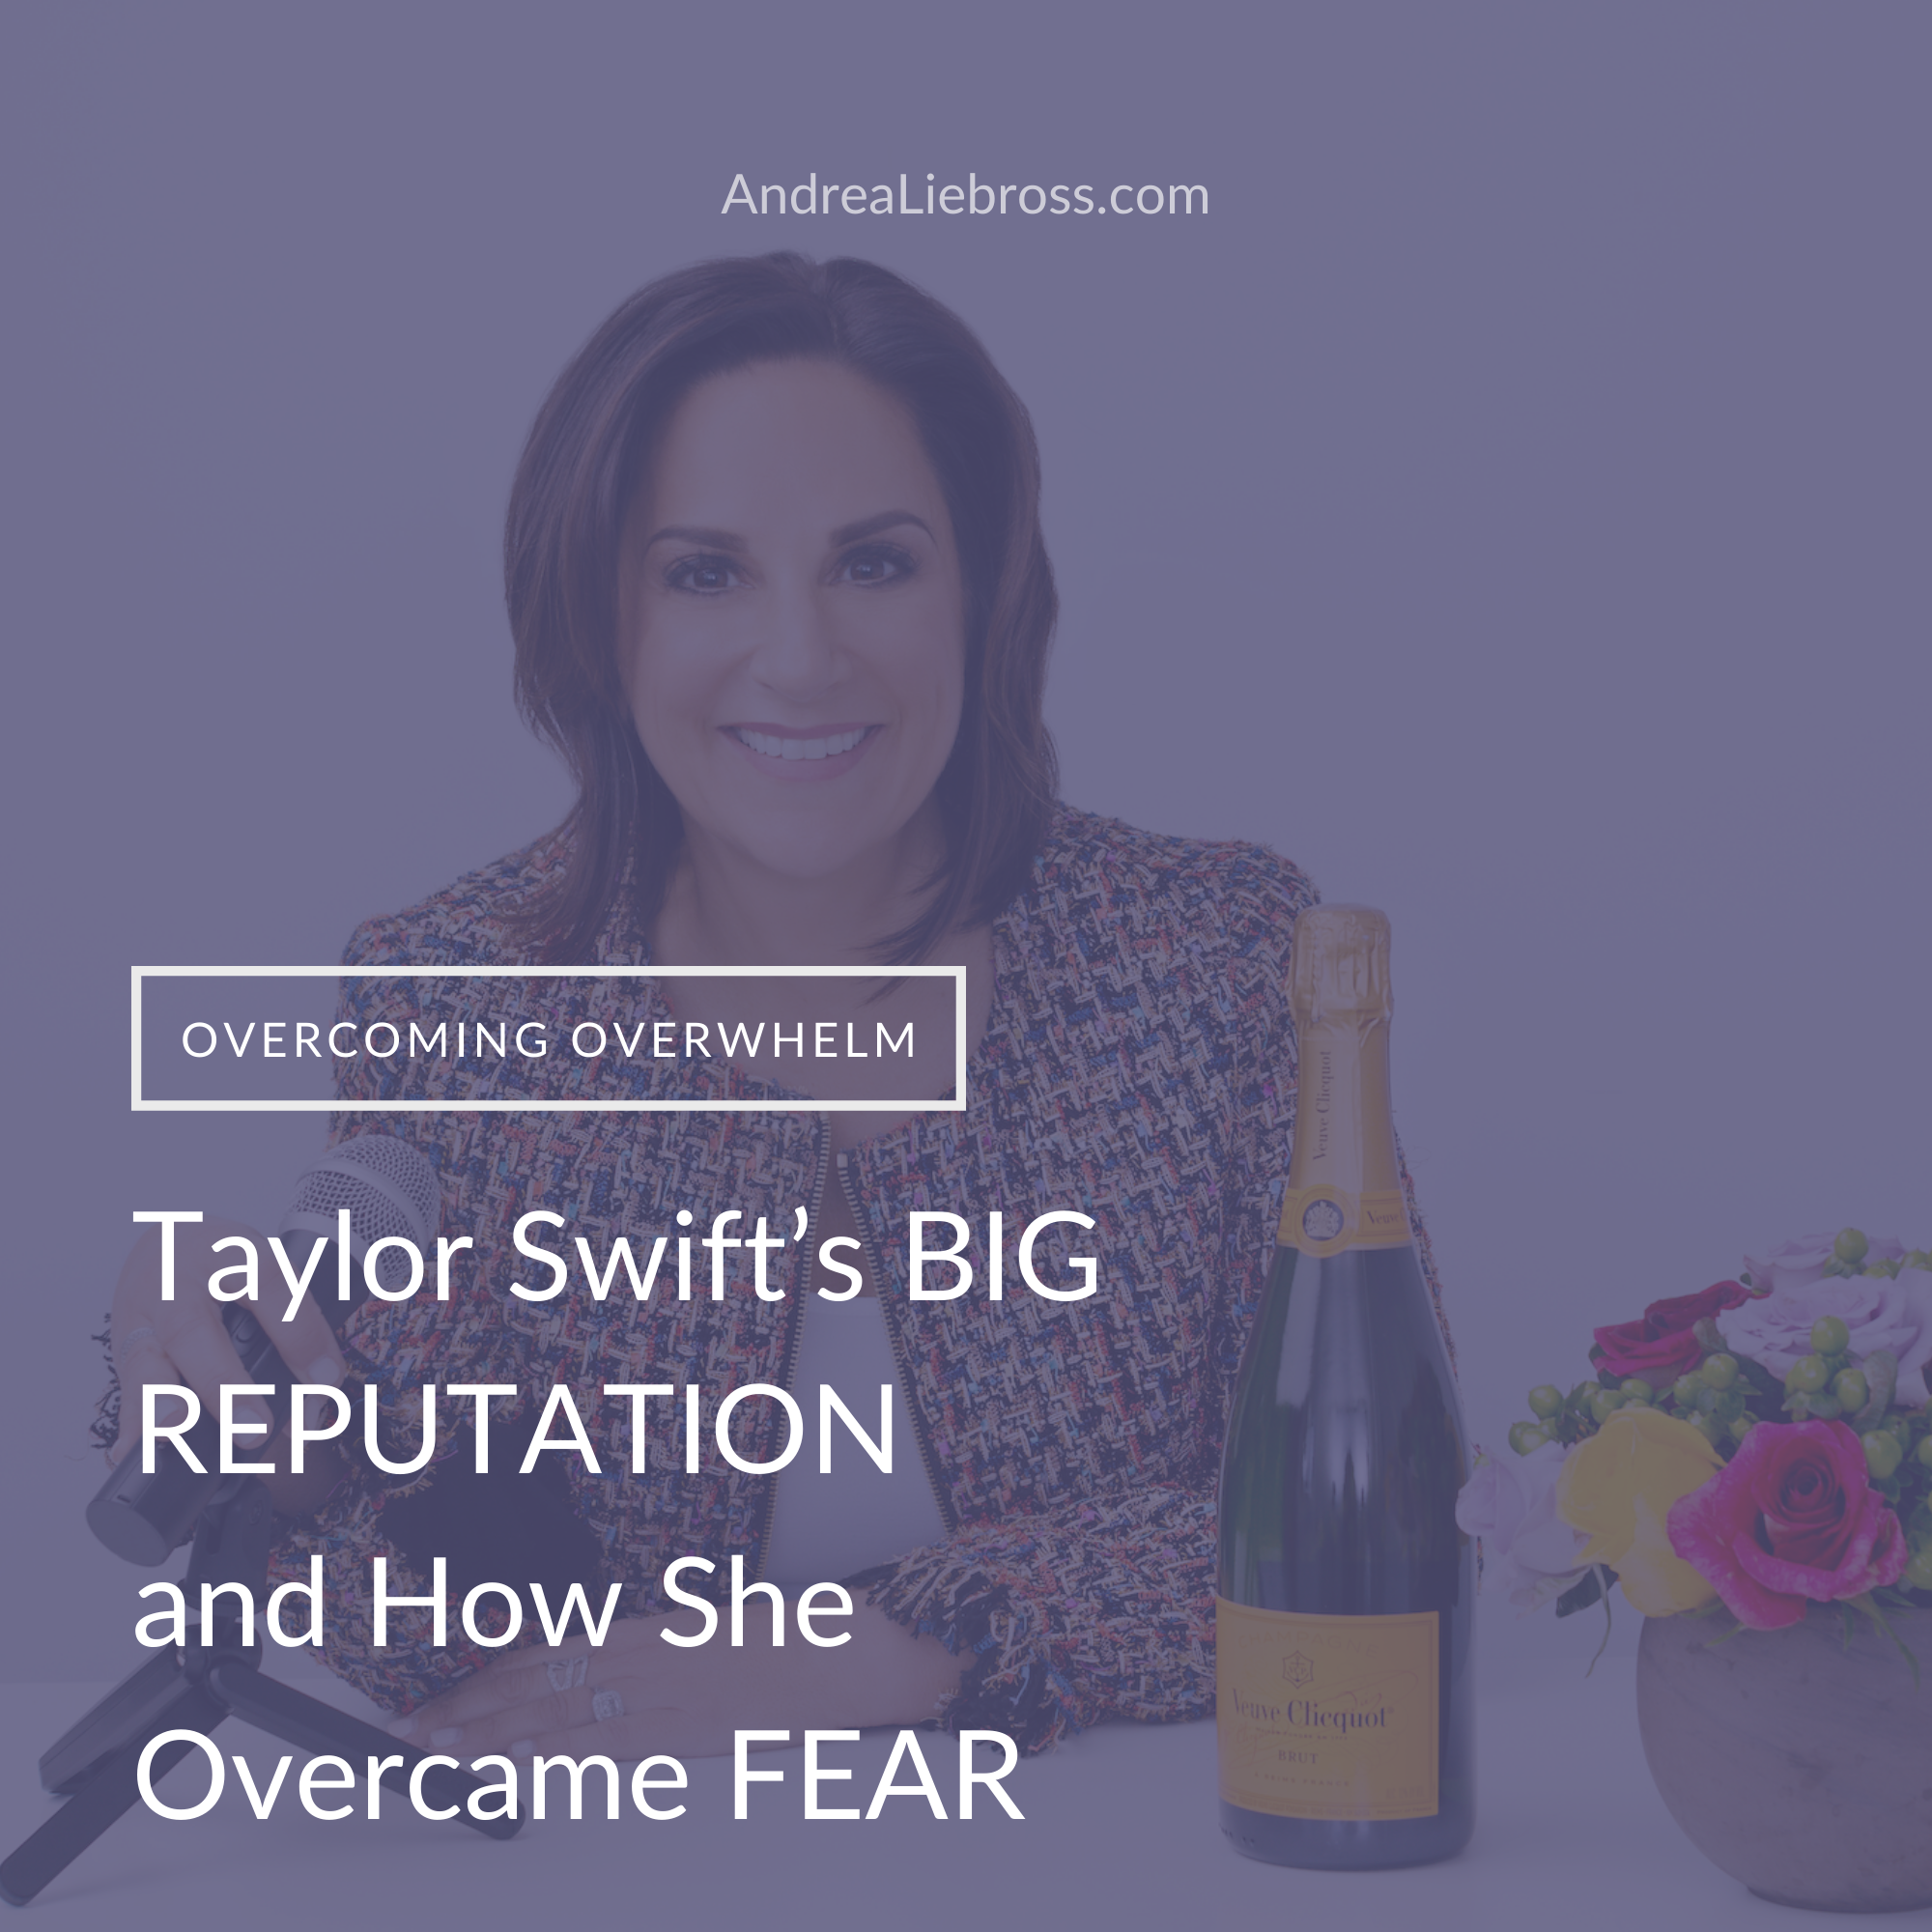 Taylor Swift's BIG REPUTATION and How She Overcame FEAR